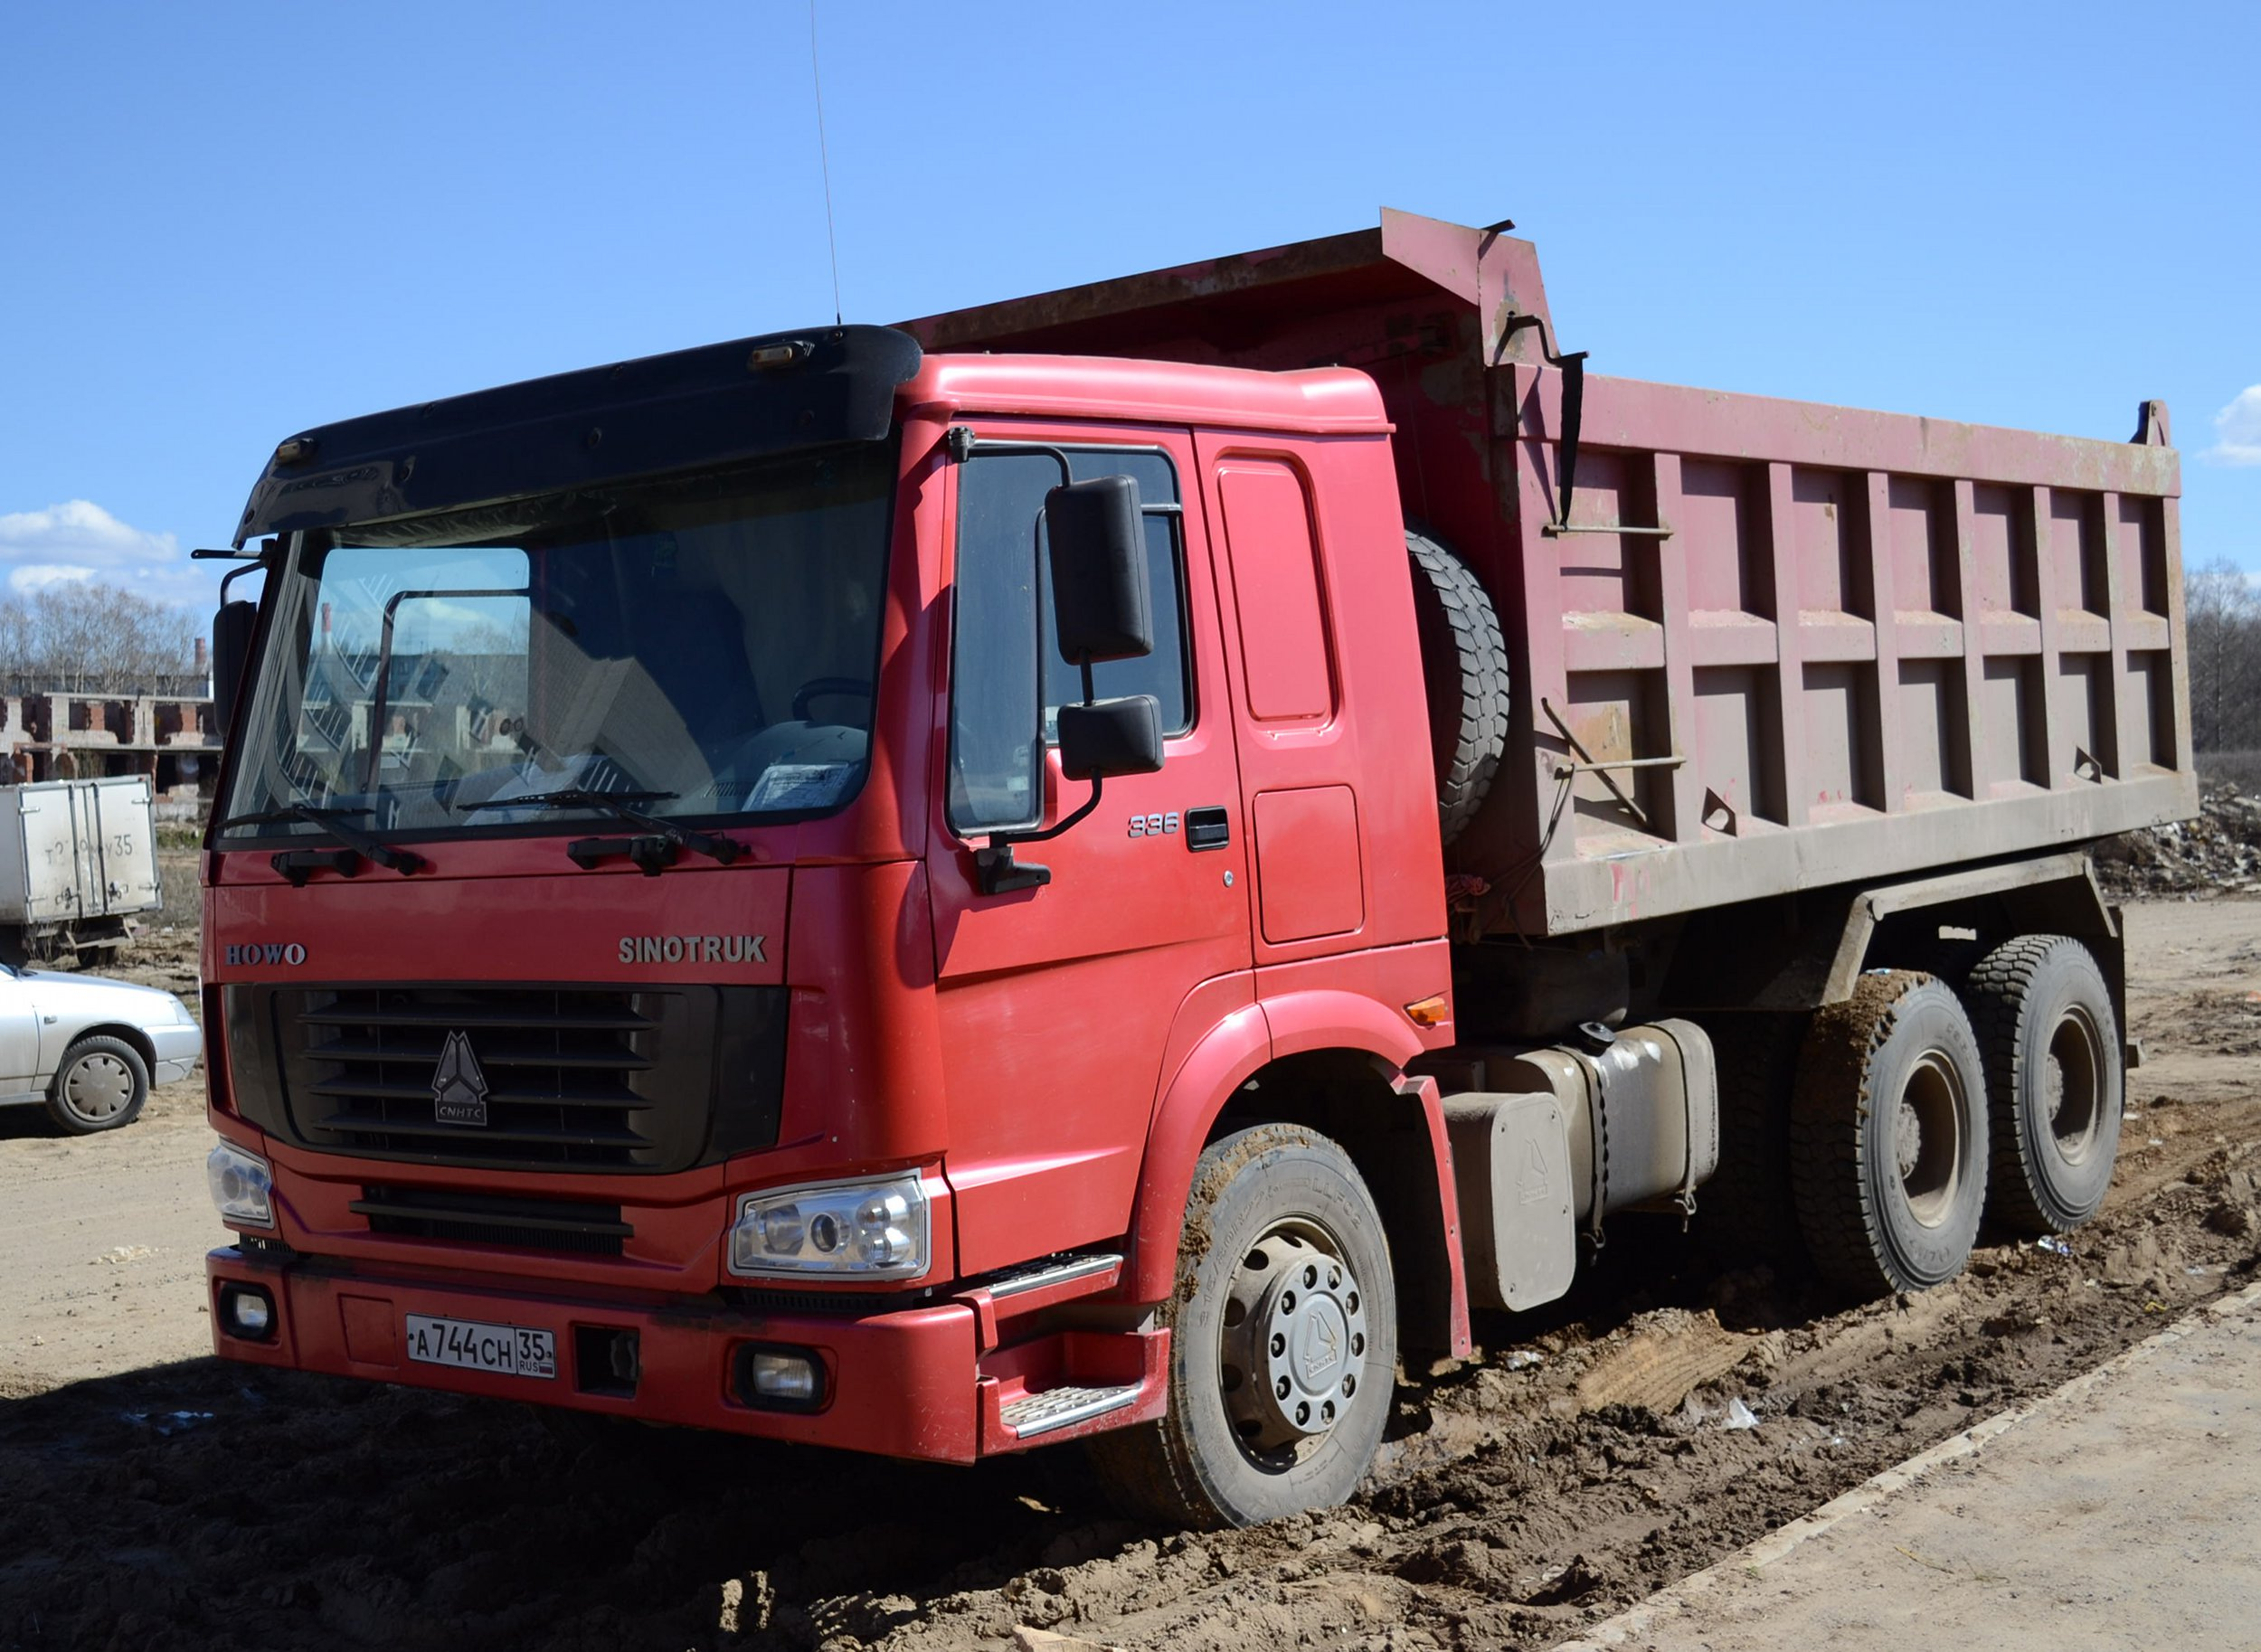 Build Your Own Ford >> File:Sinotruk Howo Truck.jpg - Wikimedia Commons